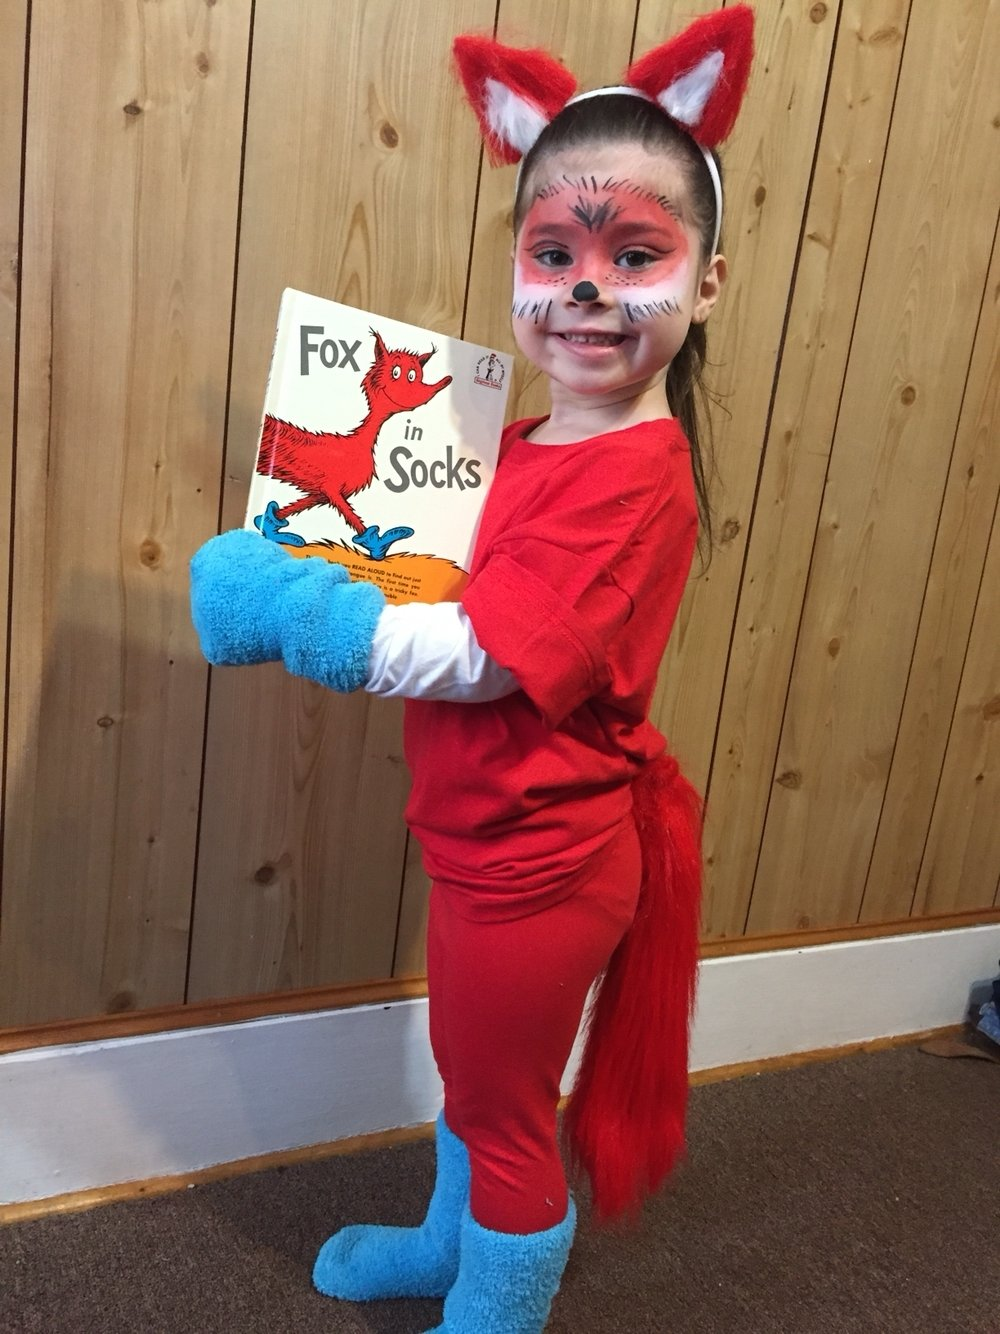 10 Wonderful Dr Seuss Book Character Dress Up Ideas character day at school fox in socks diy costume my personal 2021